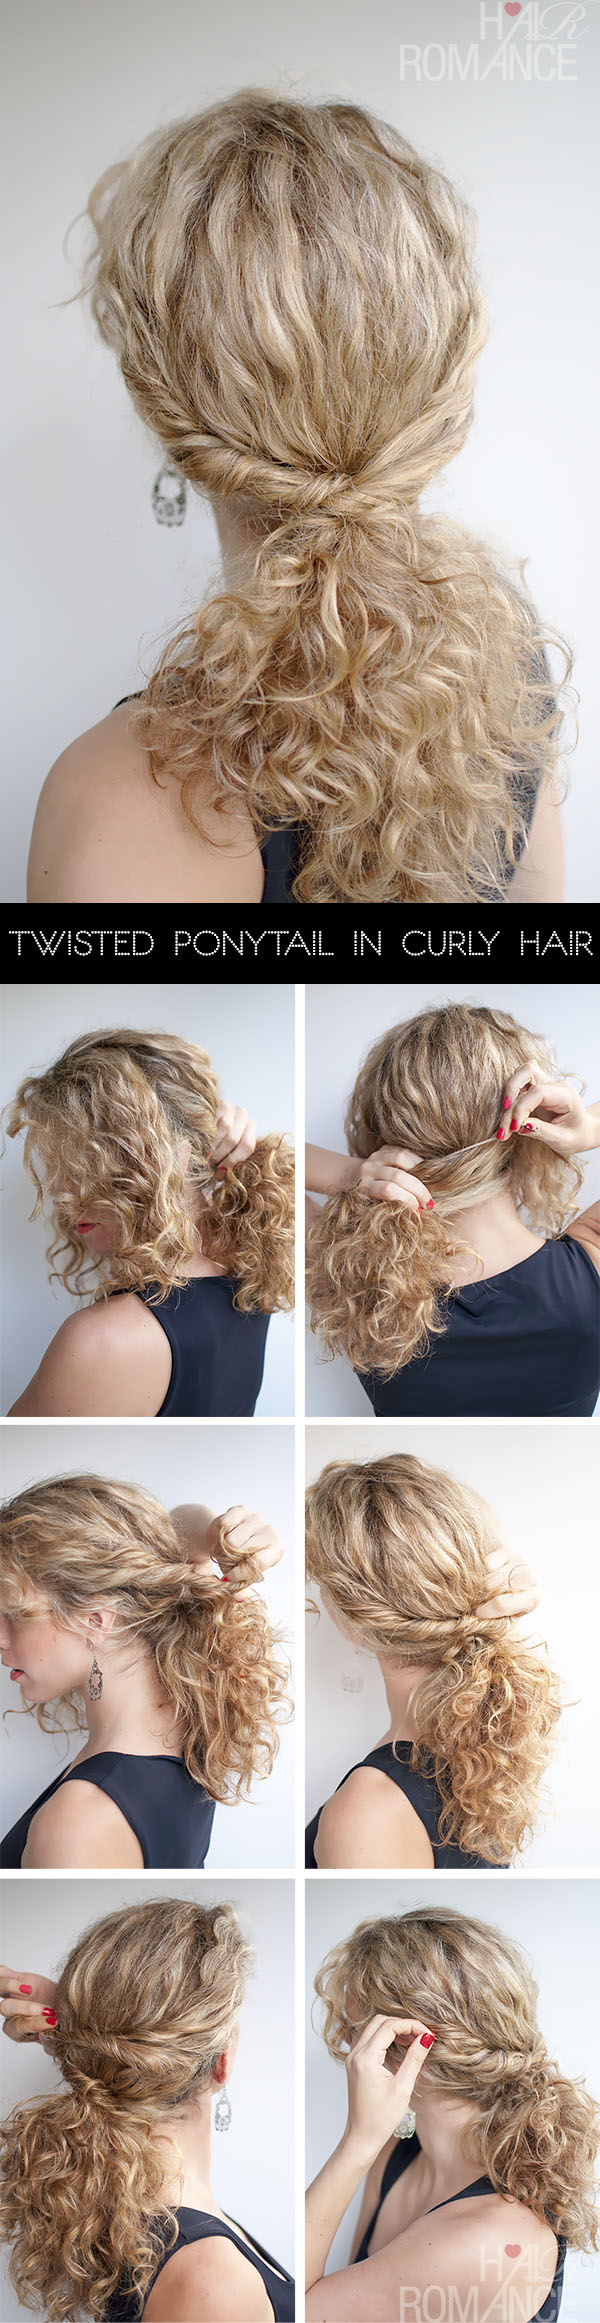 Hair-Romance-Twisted-Ponytail-Hair-Tutorial-in-curly-hair